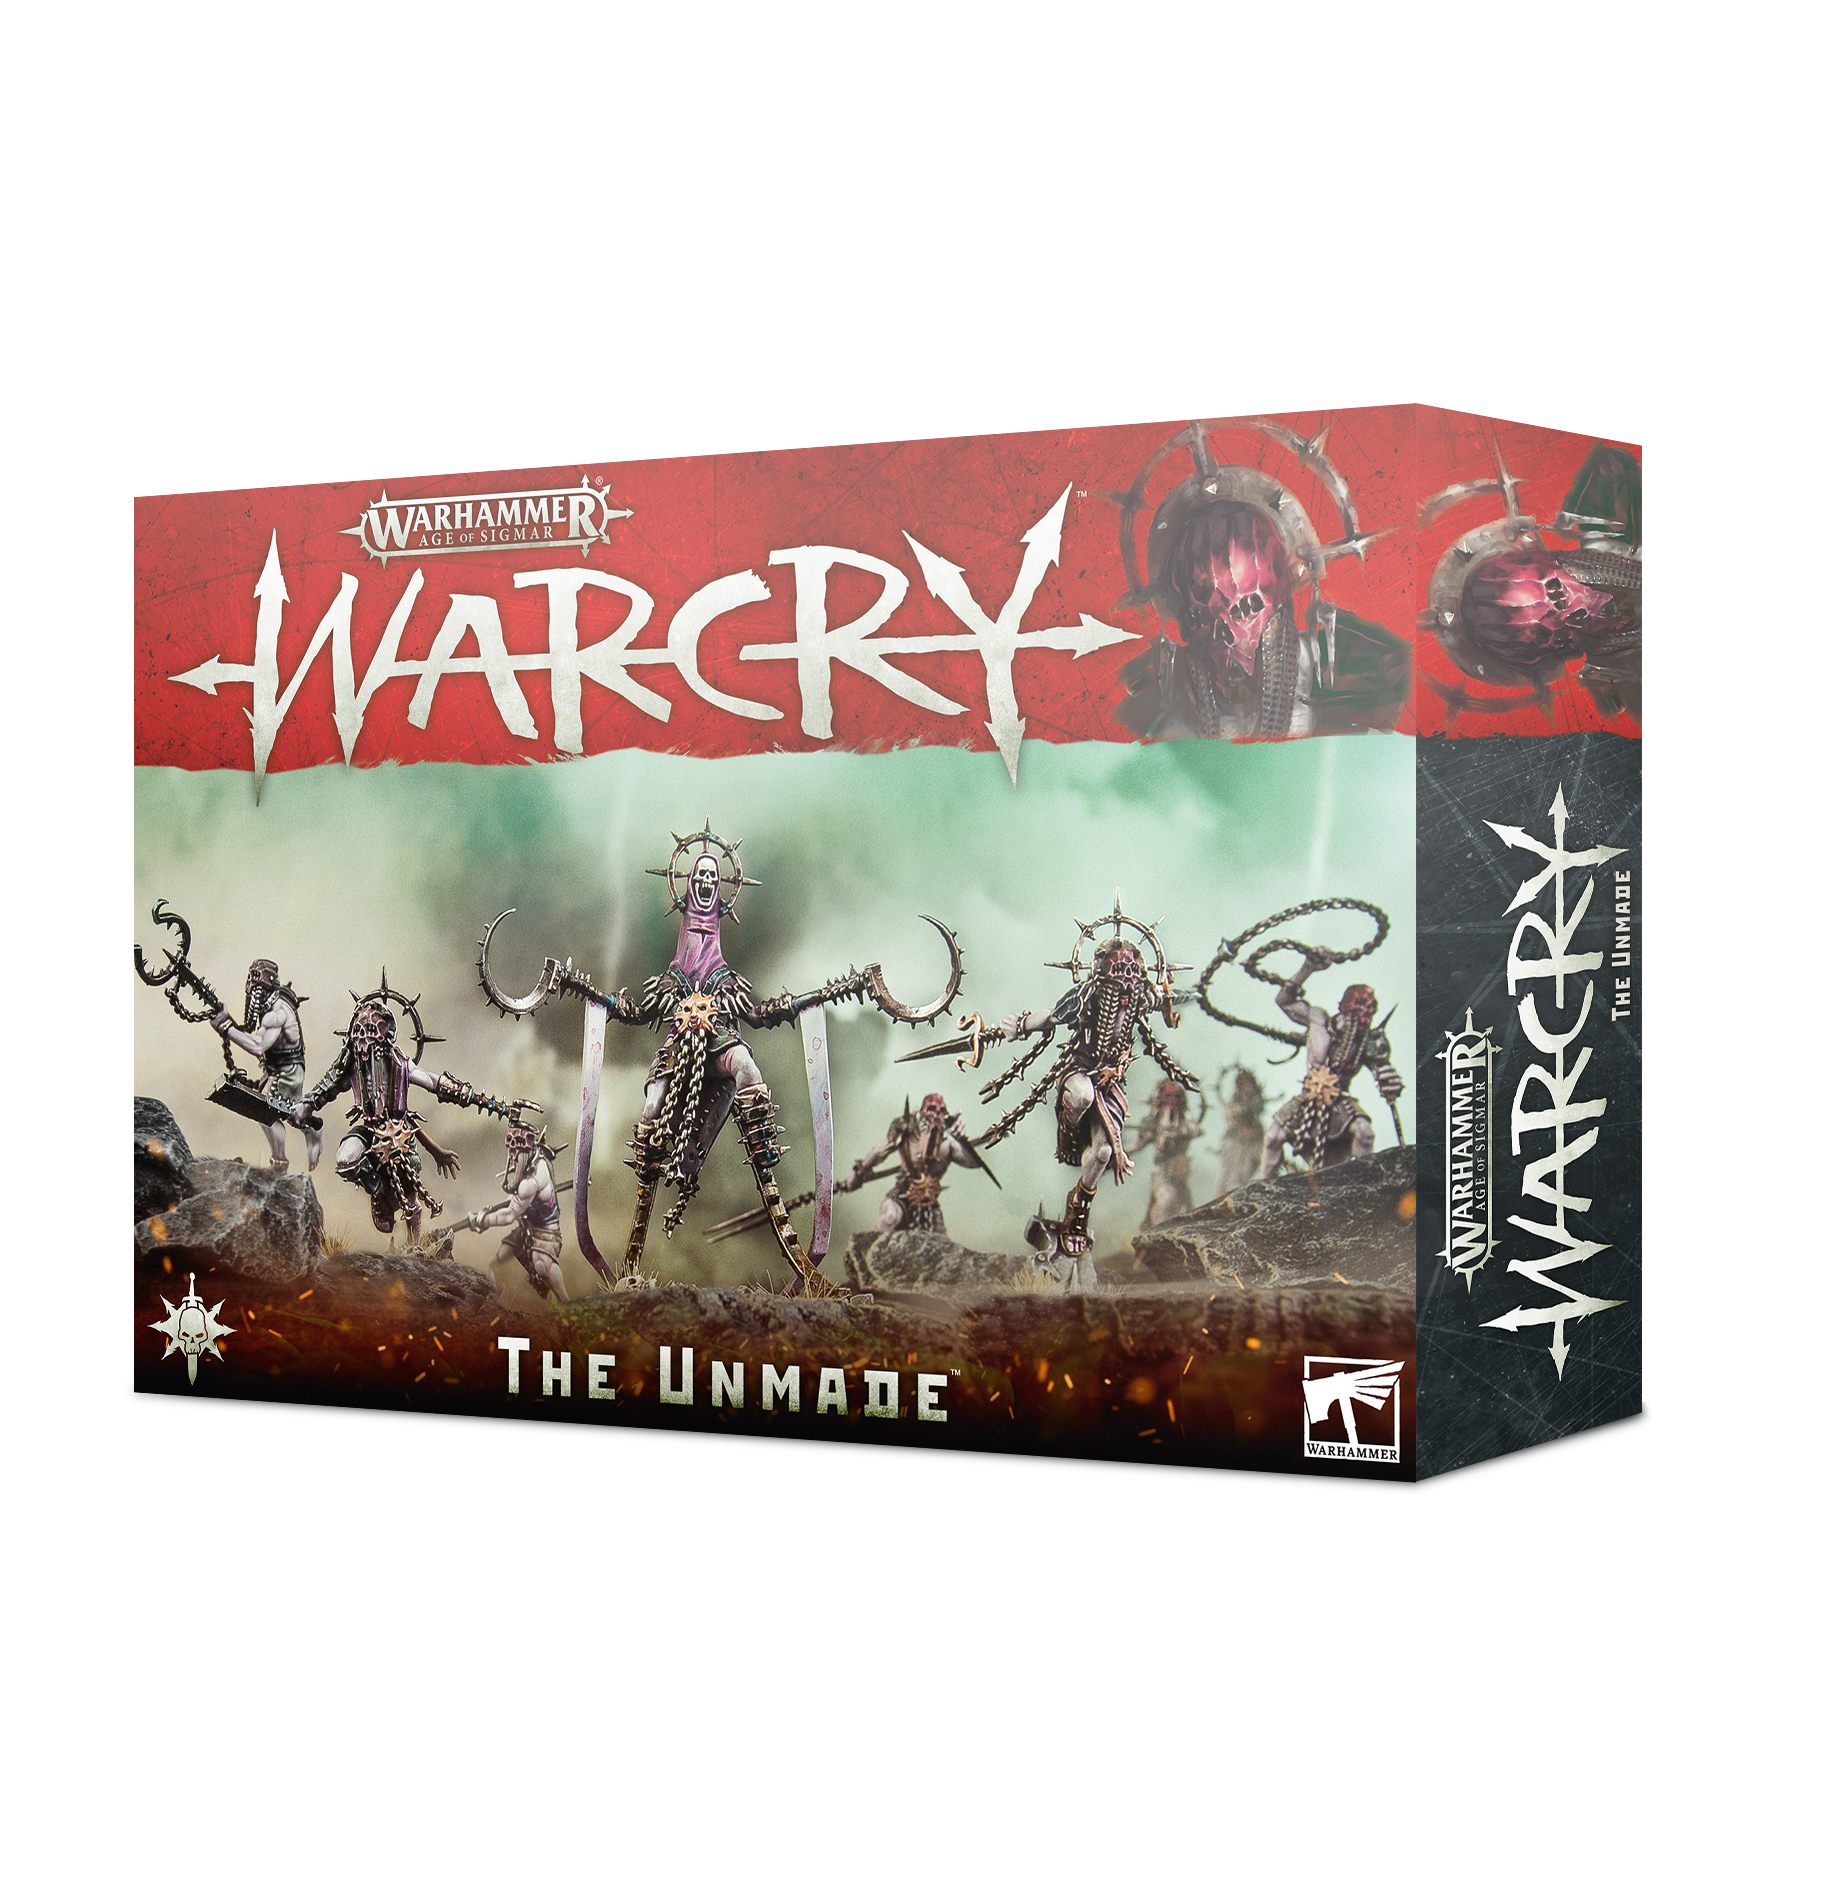 The Unmade, Warcry